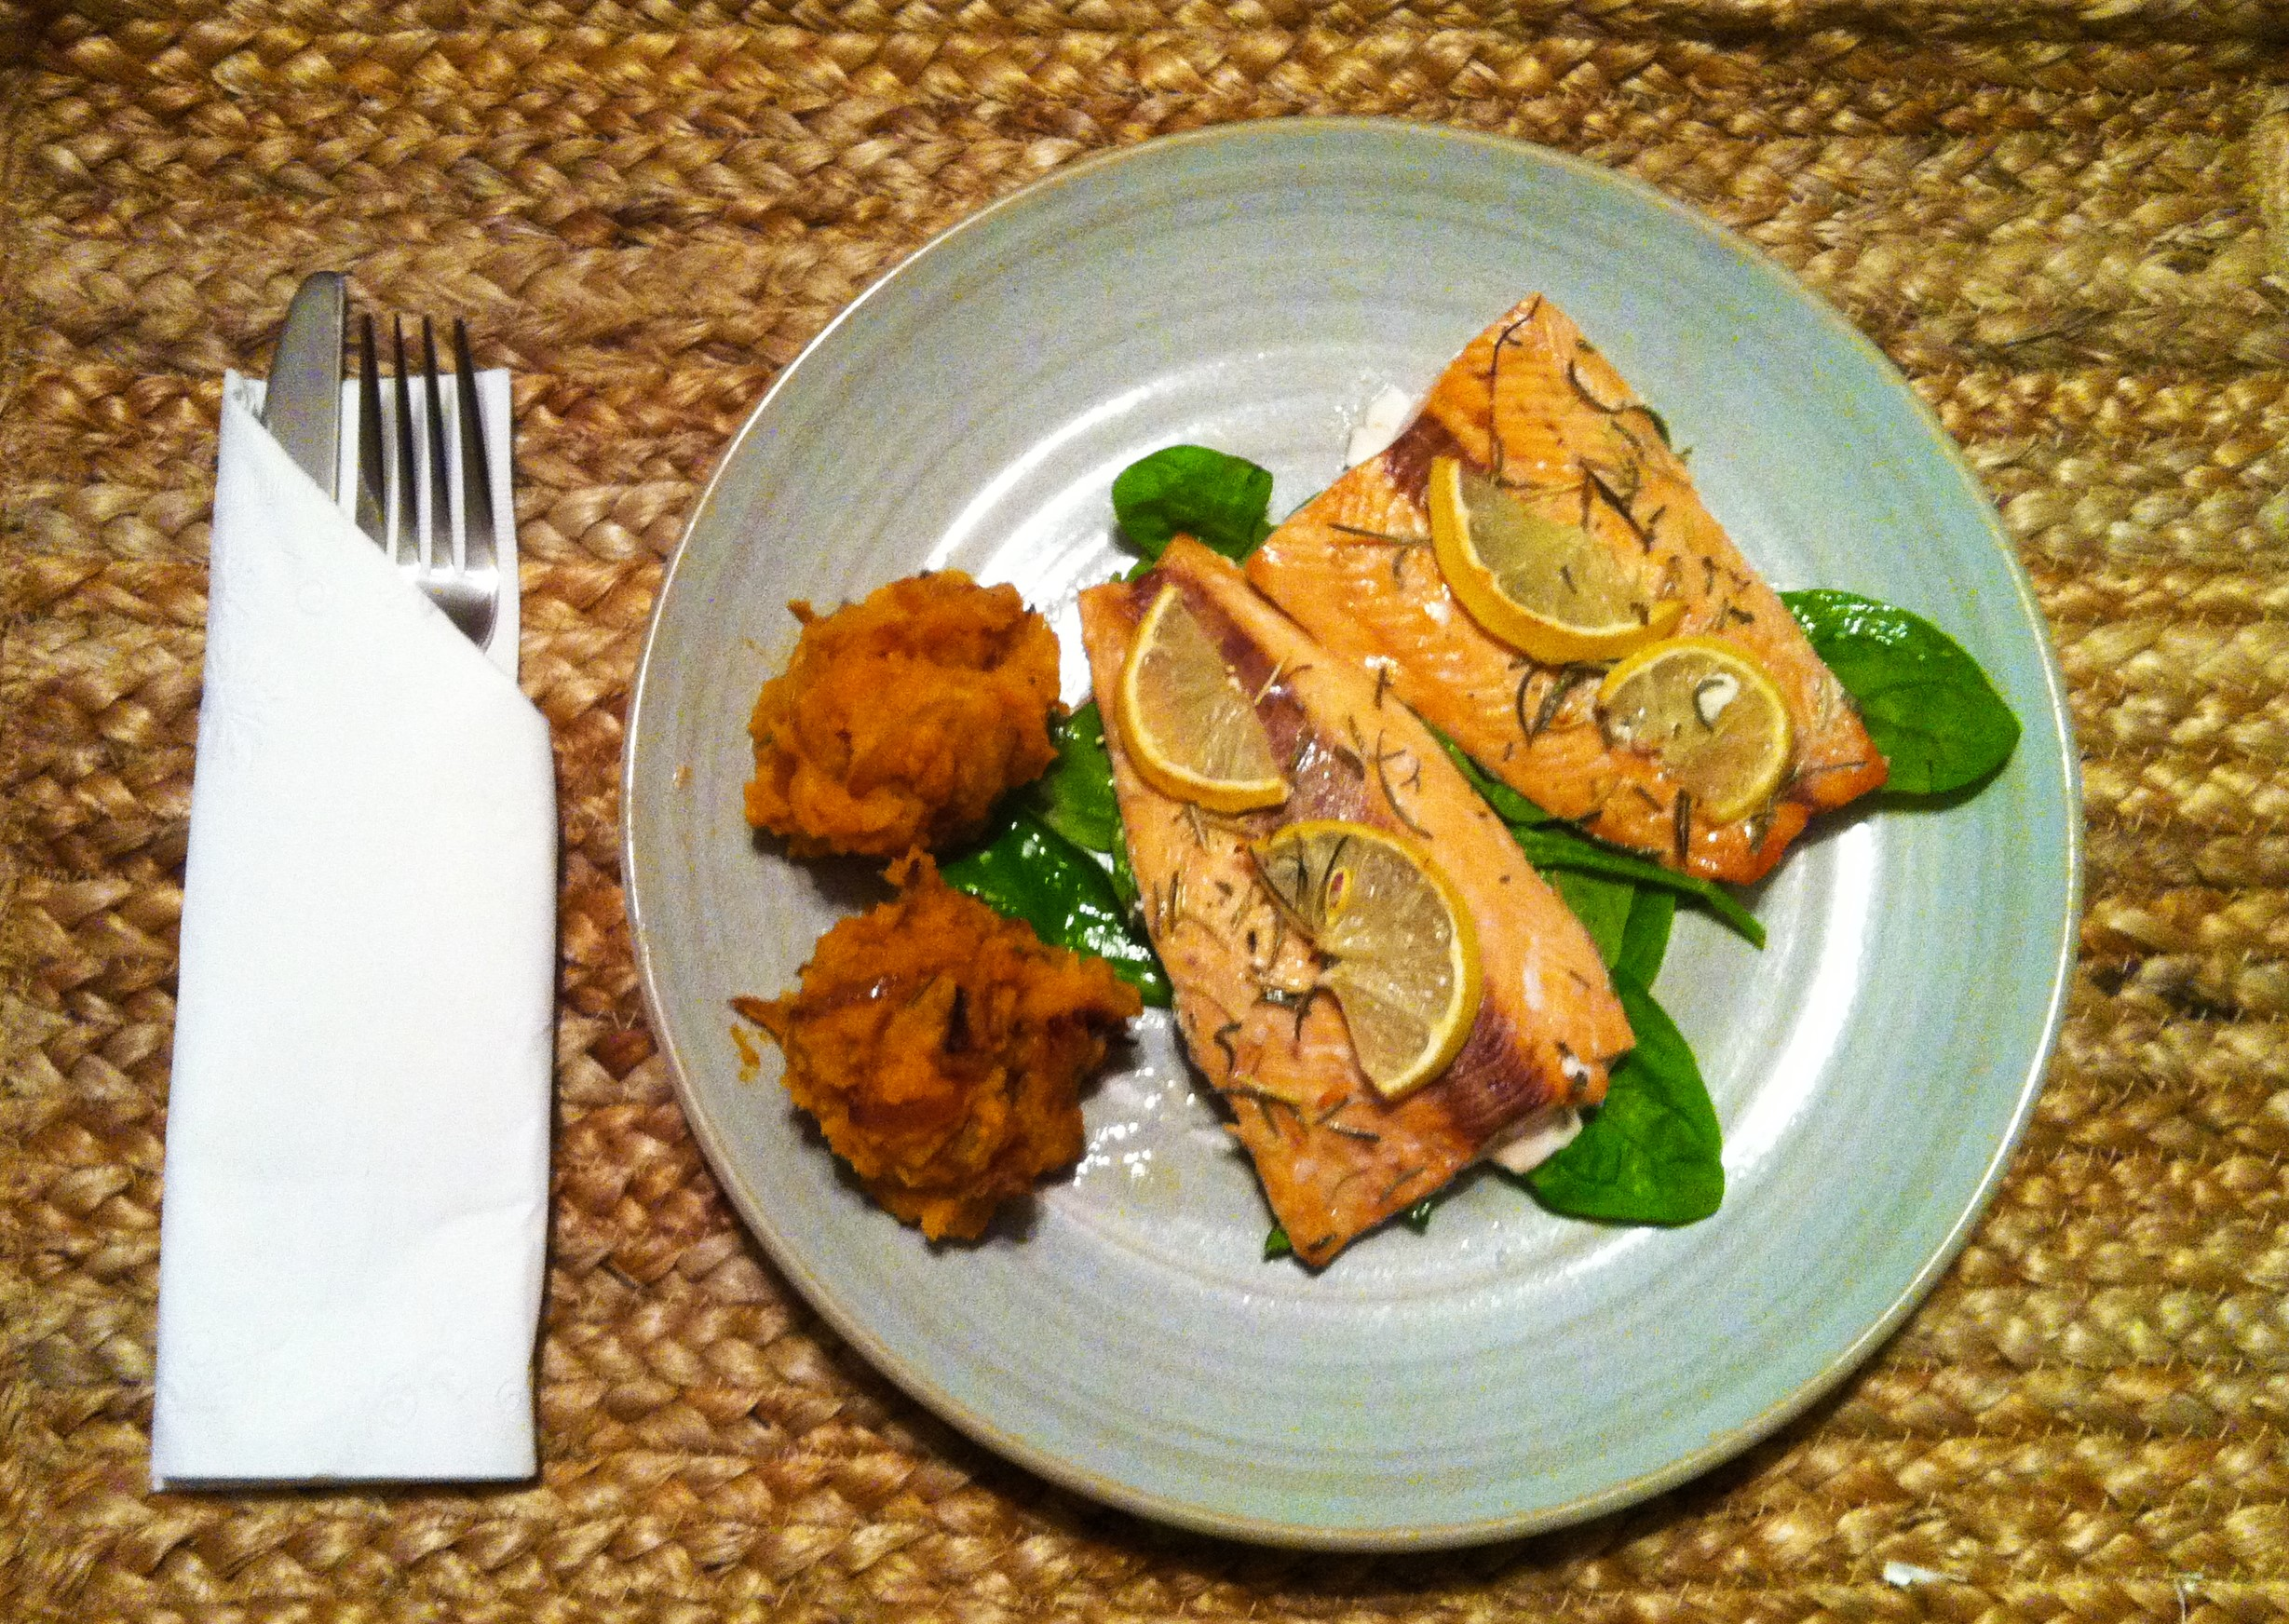 Lemon and rosemary broiled salmon with mashed sweet potatoes